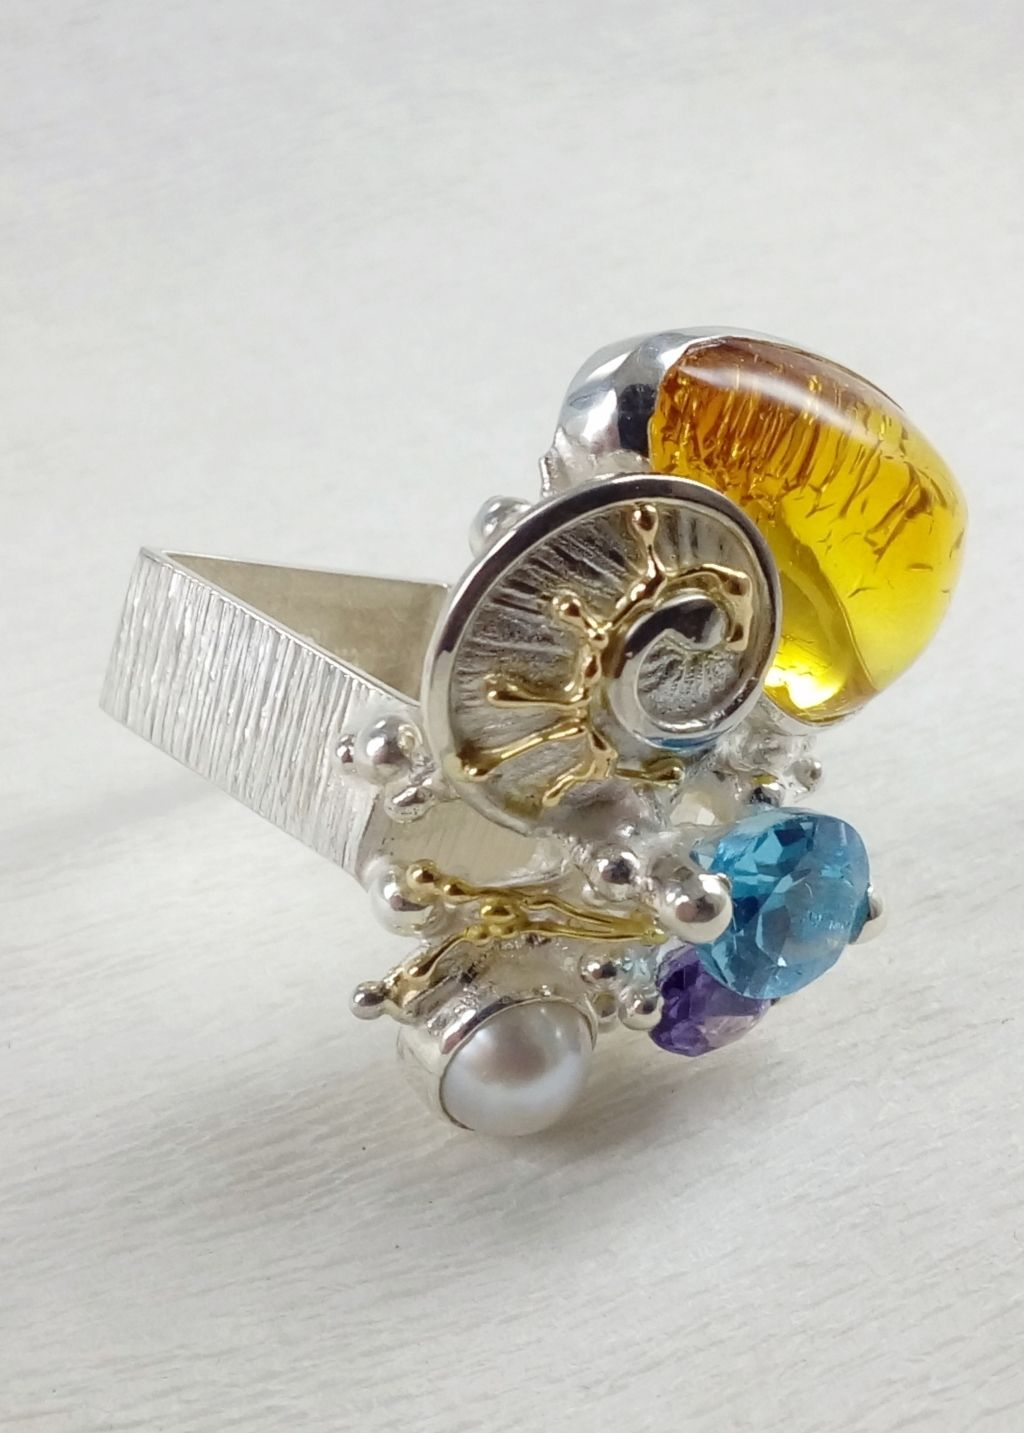 gregory pyra piro, square ring #4822, sterling silver and 14 karat gold ring, ring with amethyst and blue topaz, ring with blue topaz and amber, ring with amethyst and amber, one of a kind handcrafted ring, original handcrafted jewellery